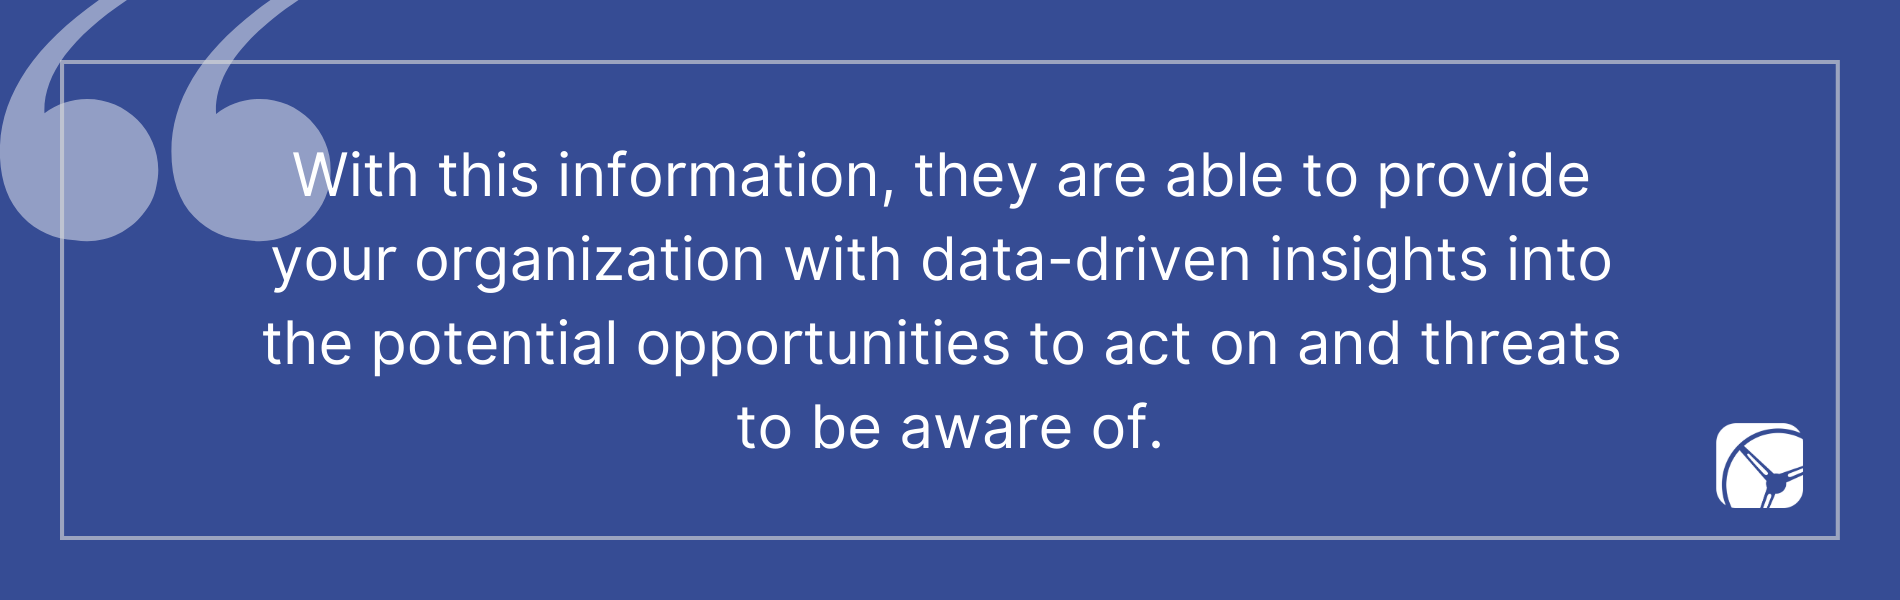 With this information, they are able to provide  your organization with data-driven insights into  the potential opportunities to act on and threats  to be aware of.